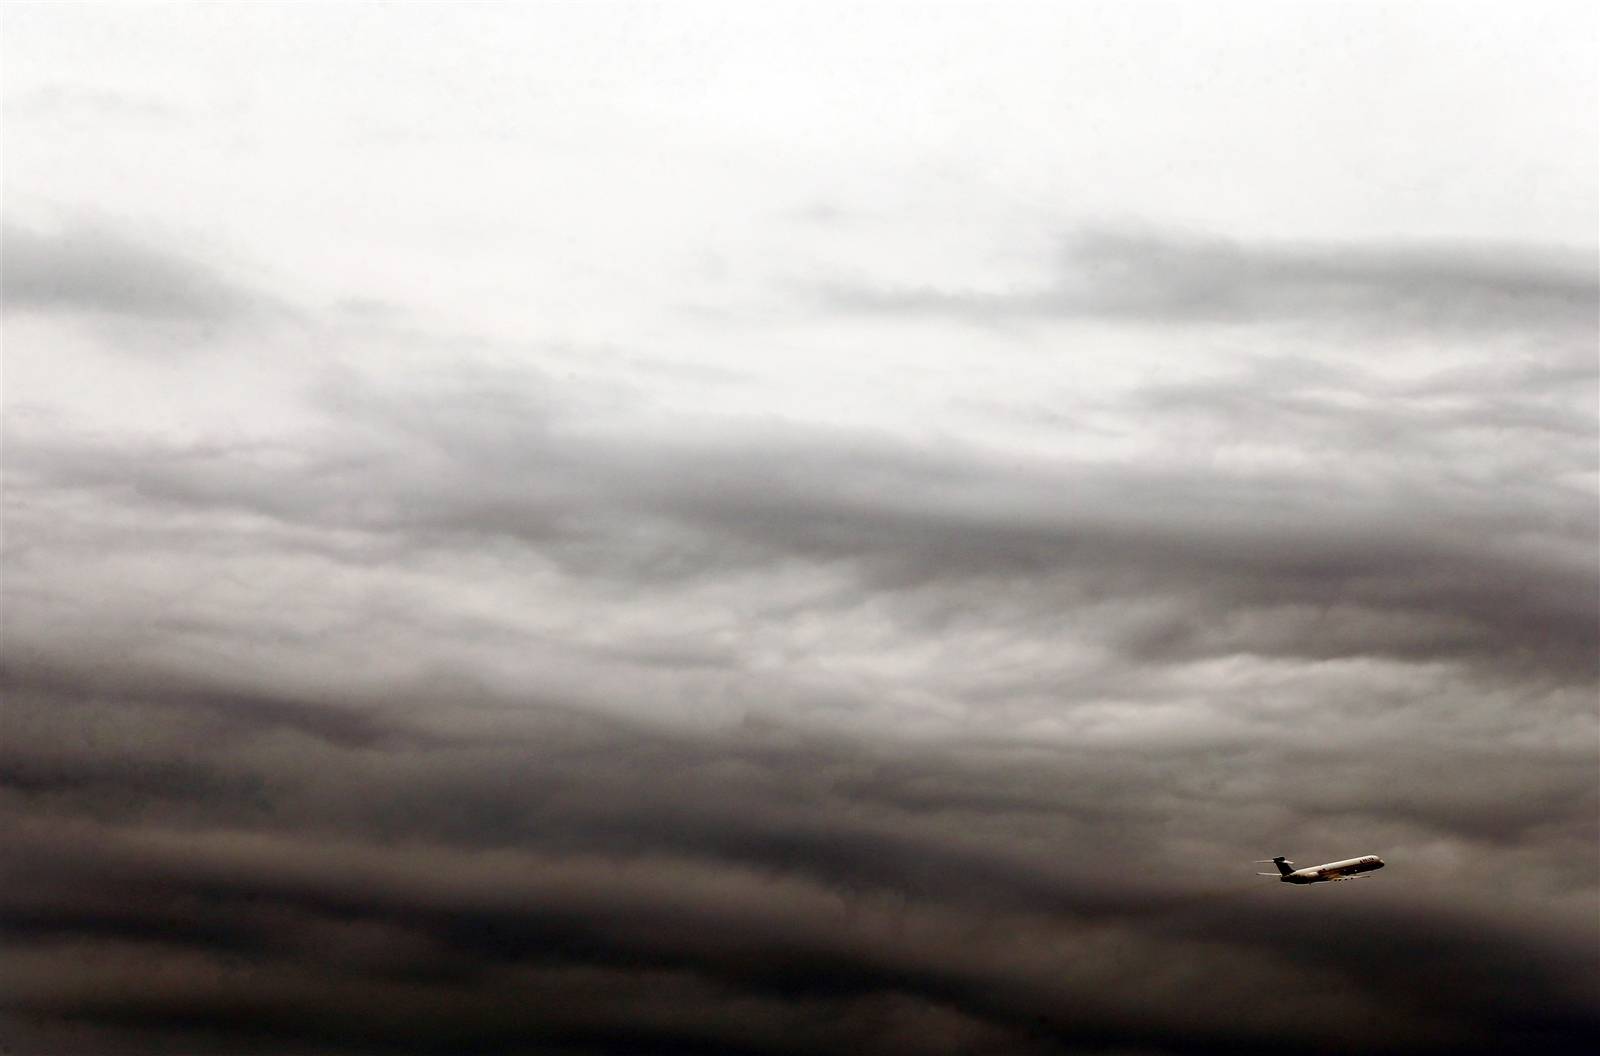 A plane takes off from the Buffalo Niagara International airport just before a storm in Cheektowaga.